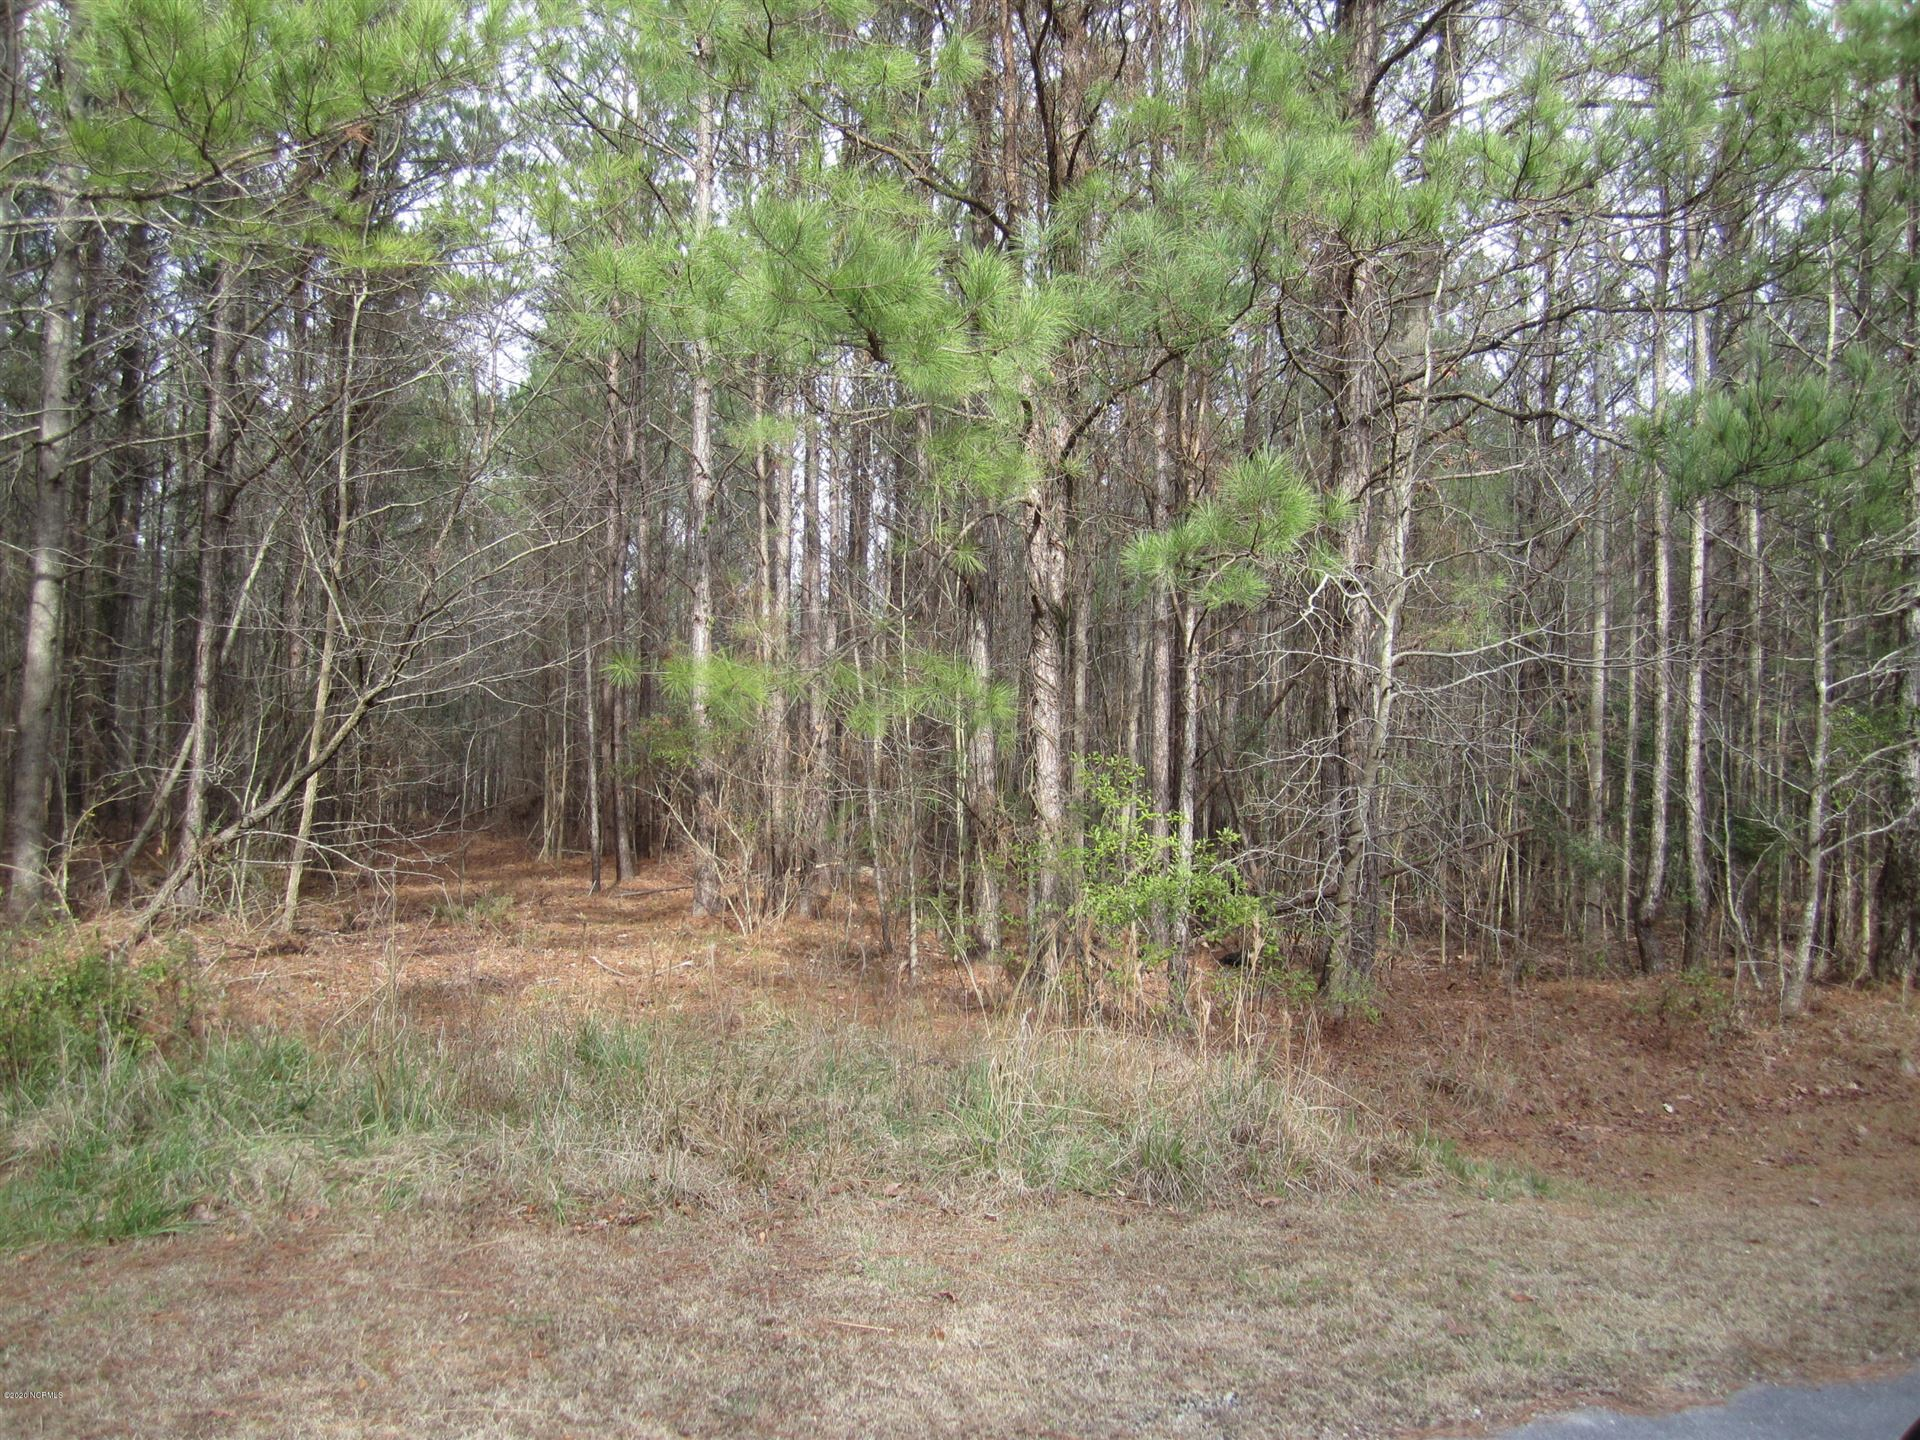 Photo of Lot 88 State Rd 1115 Off, Chocowinity, NC 27817 (MLS # 100201760)